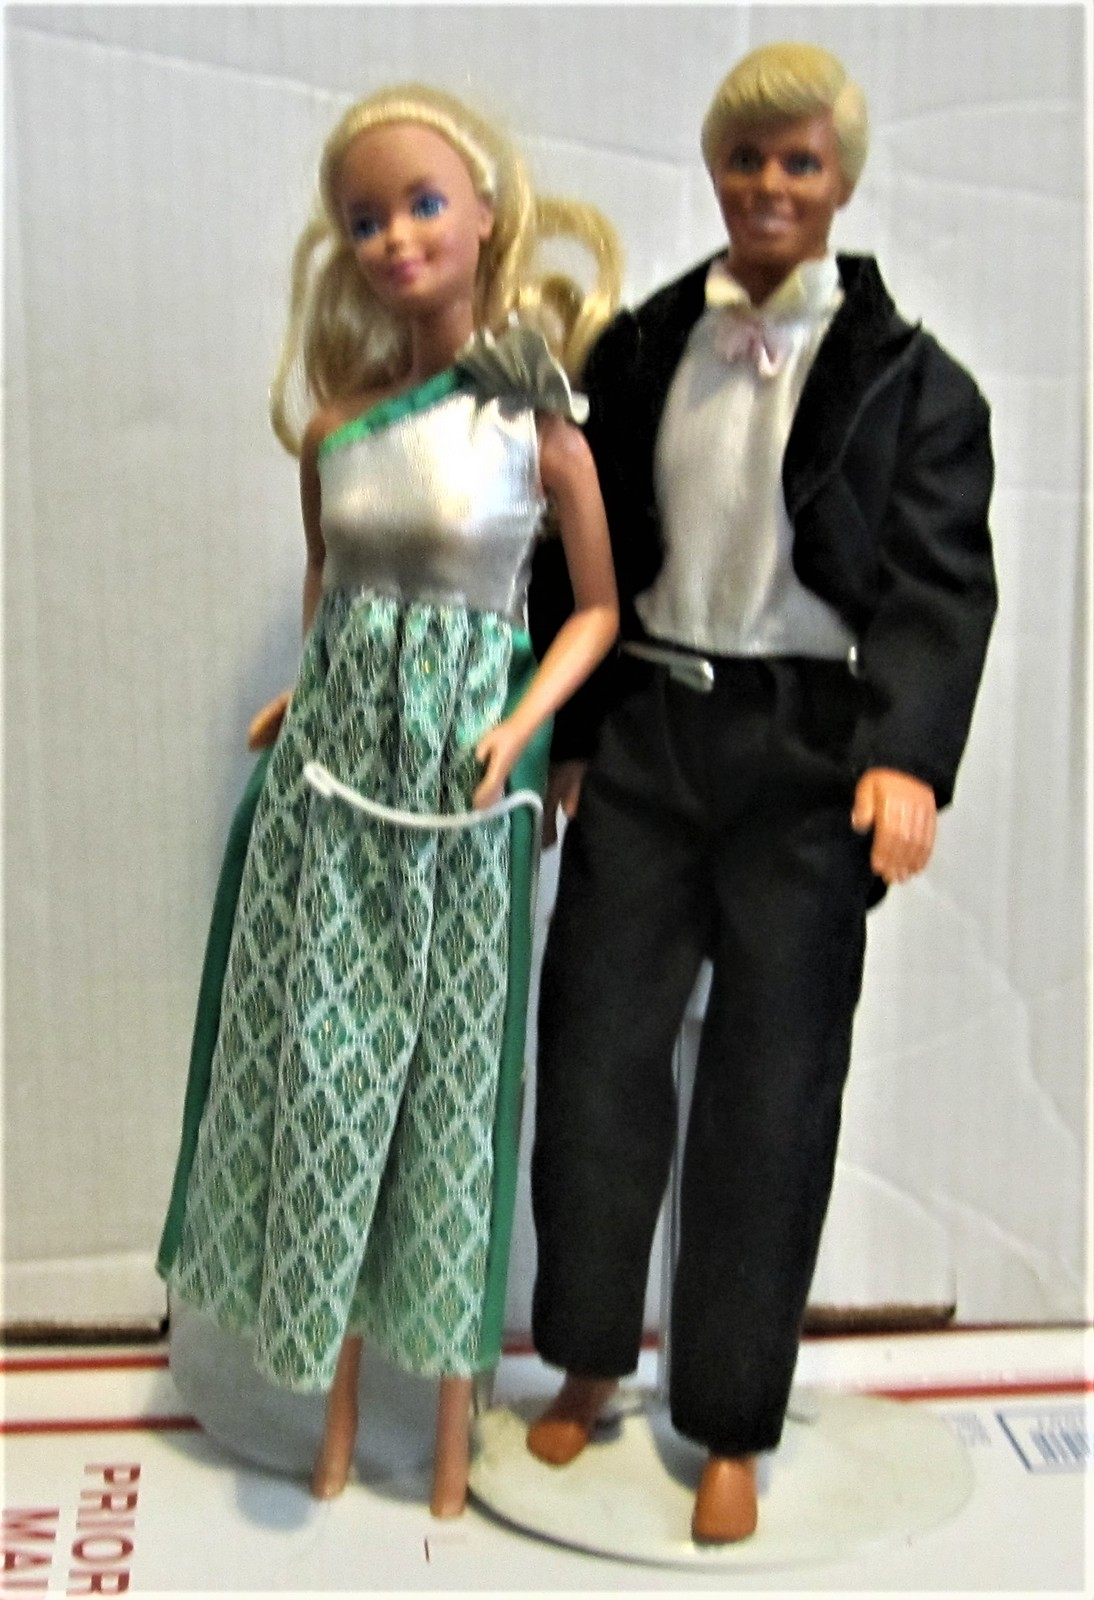 Primary image for Barbie Dolls - Ken & Barbie (Black Tuxedo & formal dress)